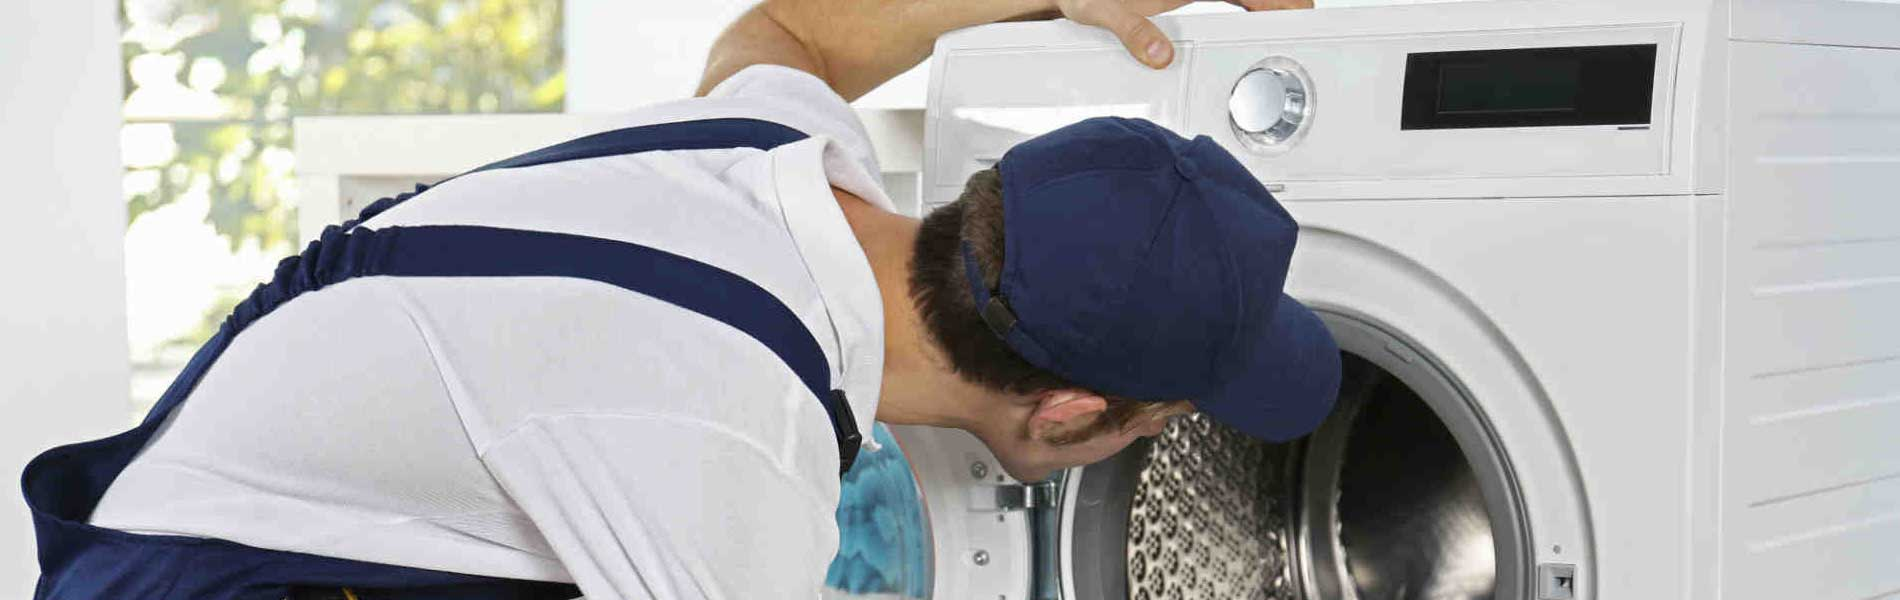 LG Washing Machine Mechanic in Basin Bridge